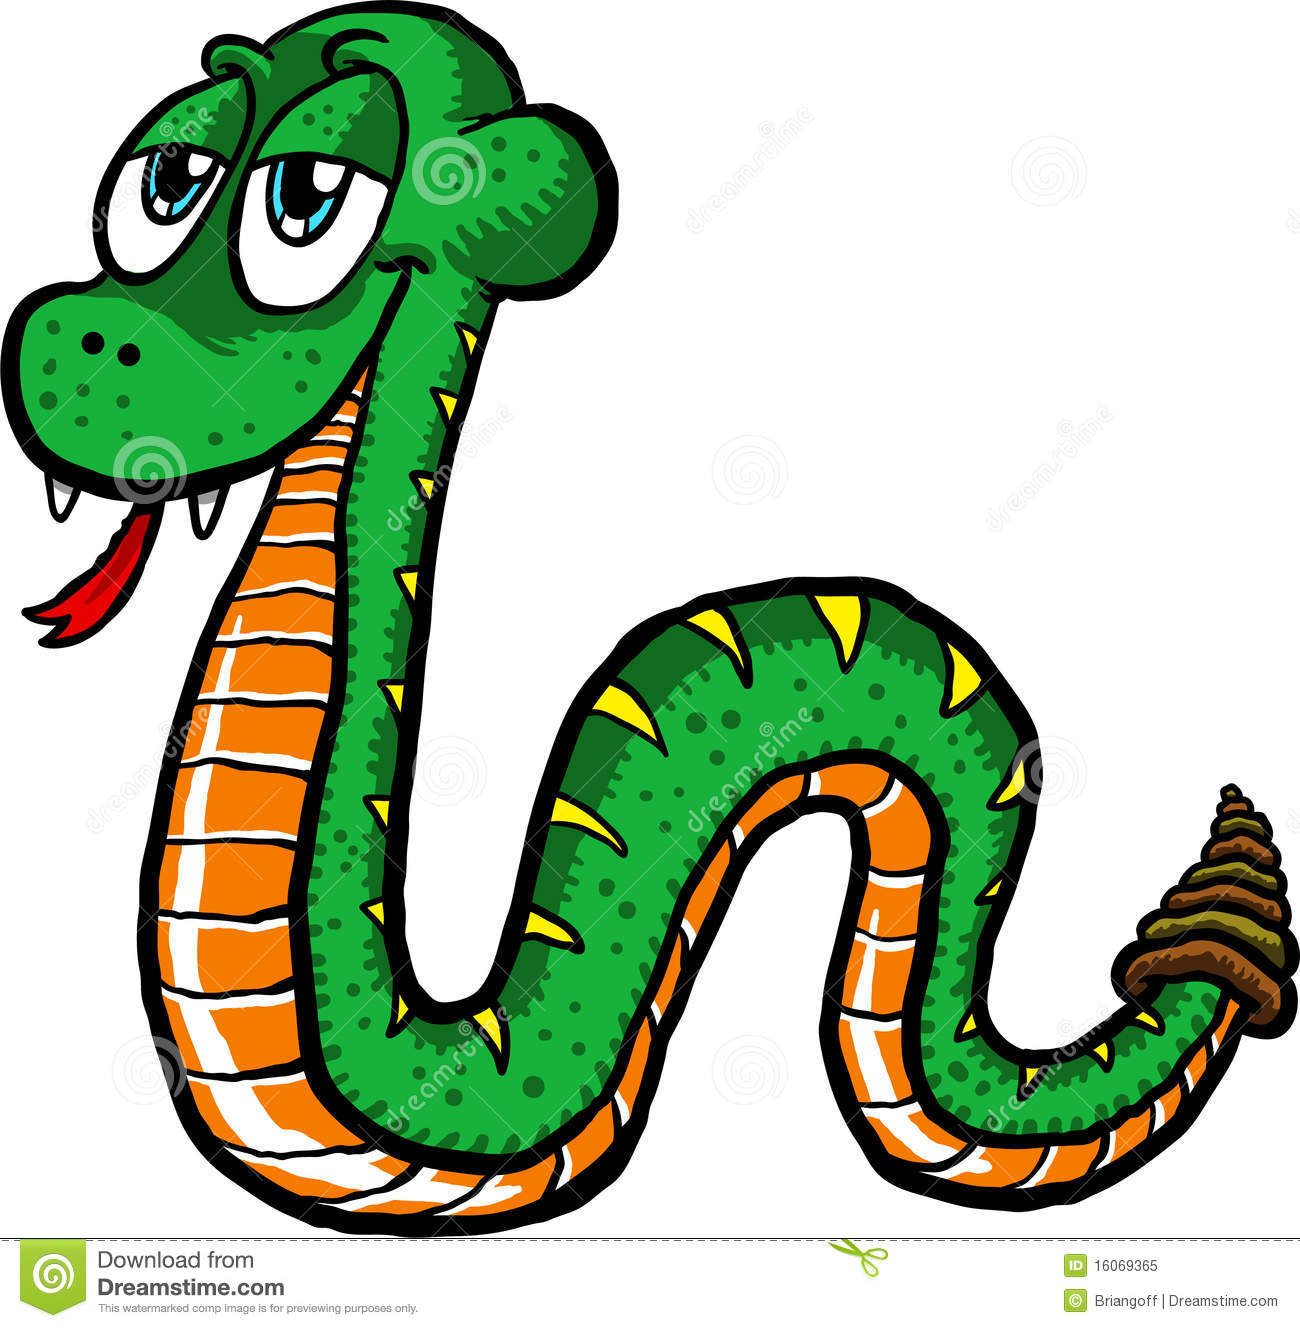 Vector illustration of a cute cartoon snake slithering along.